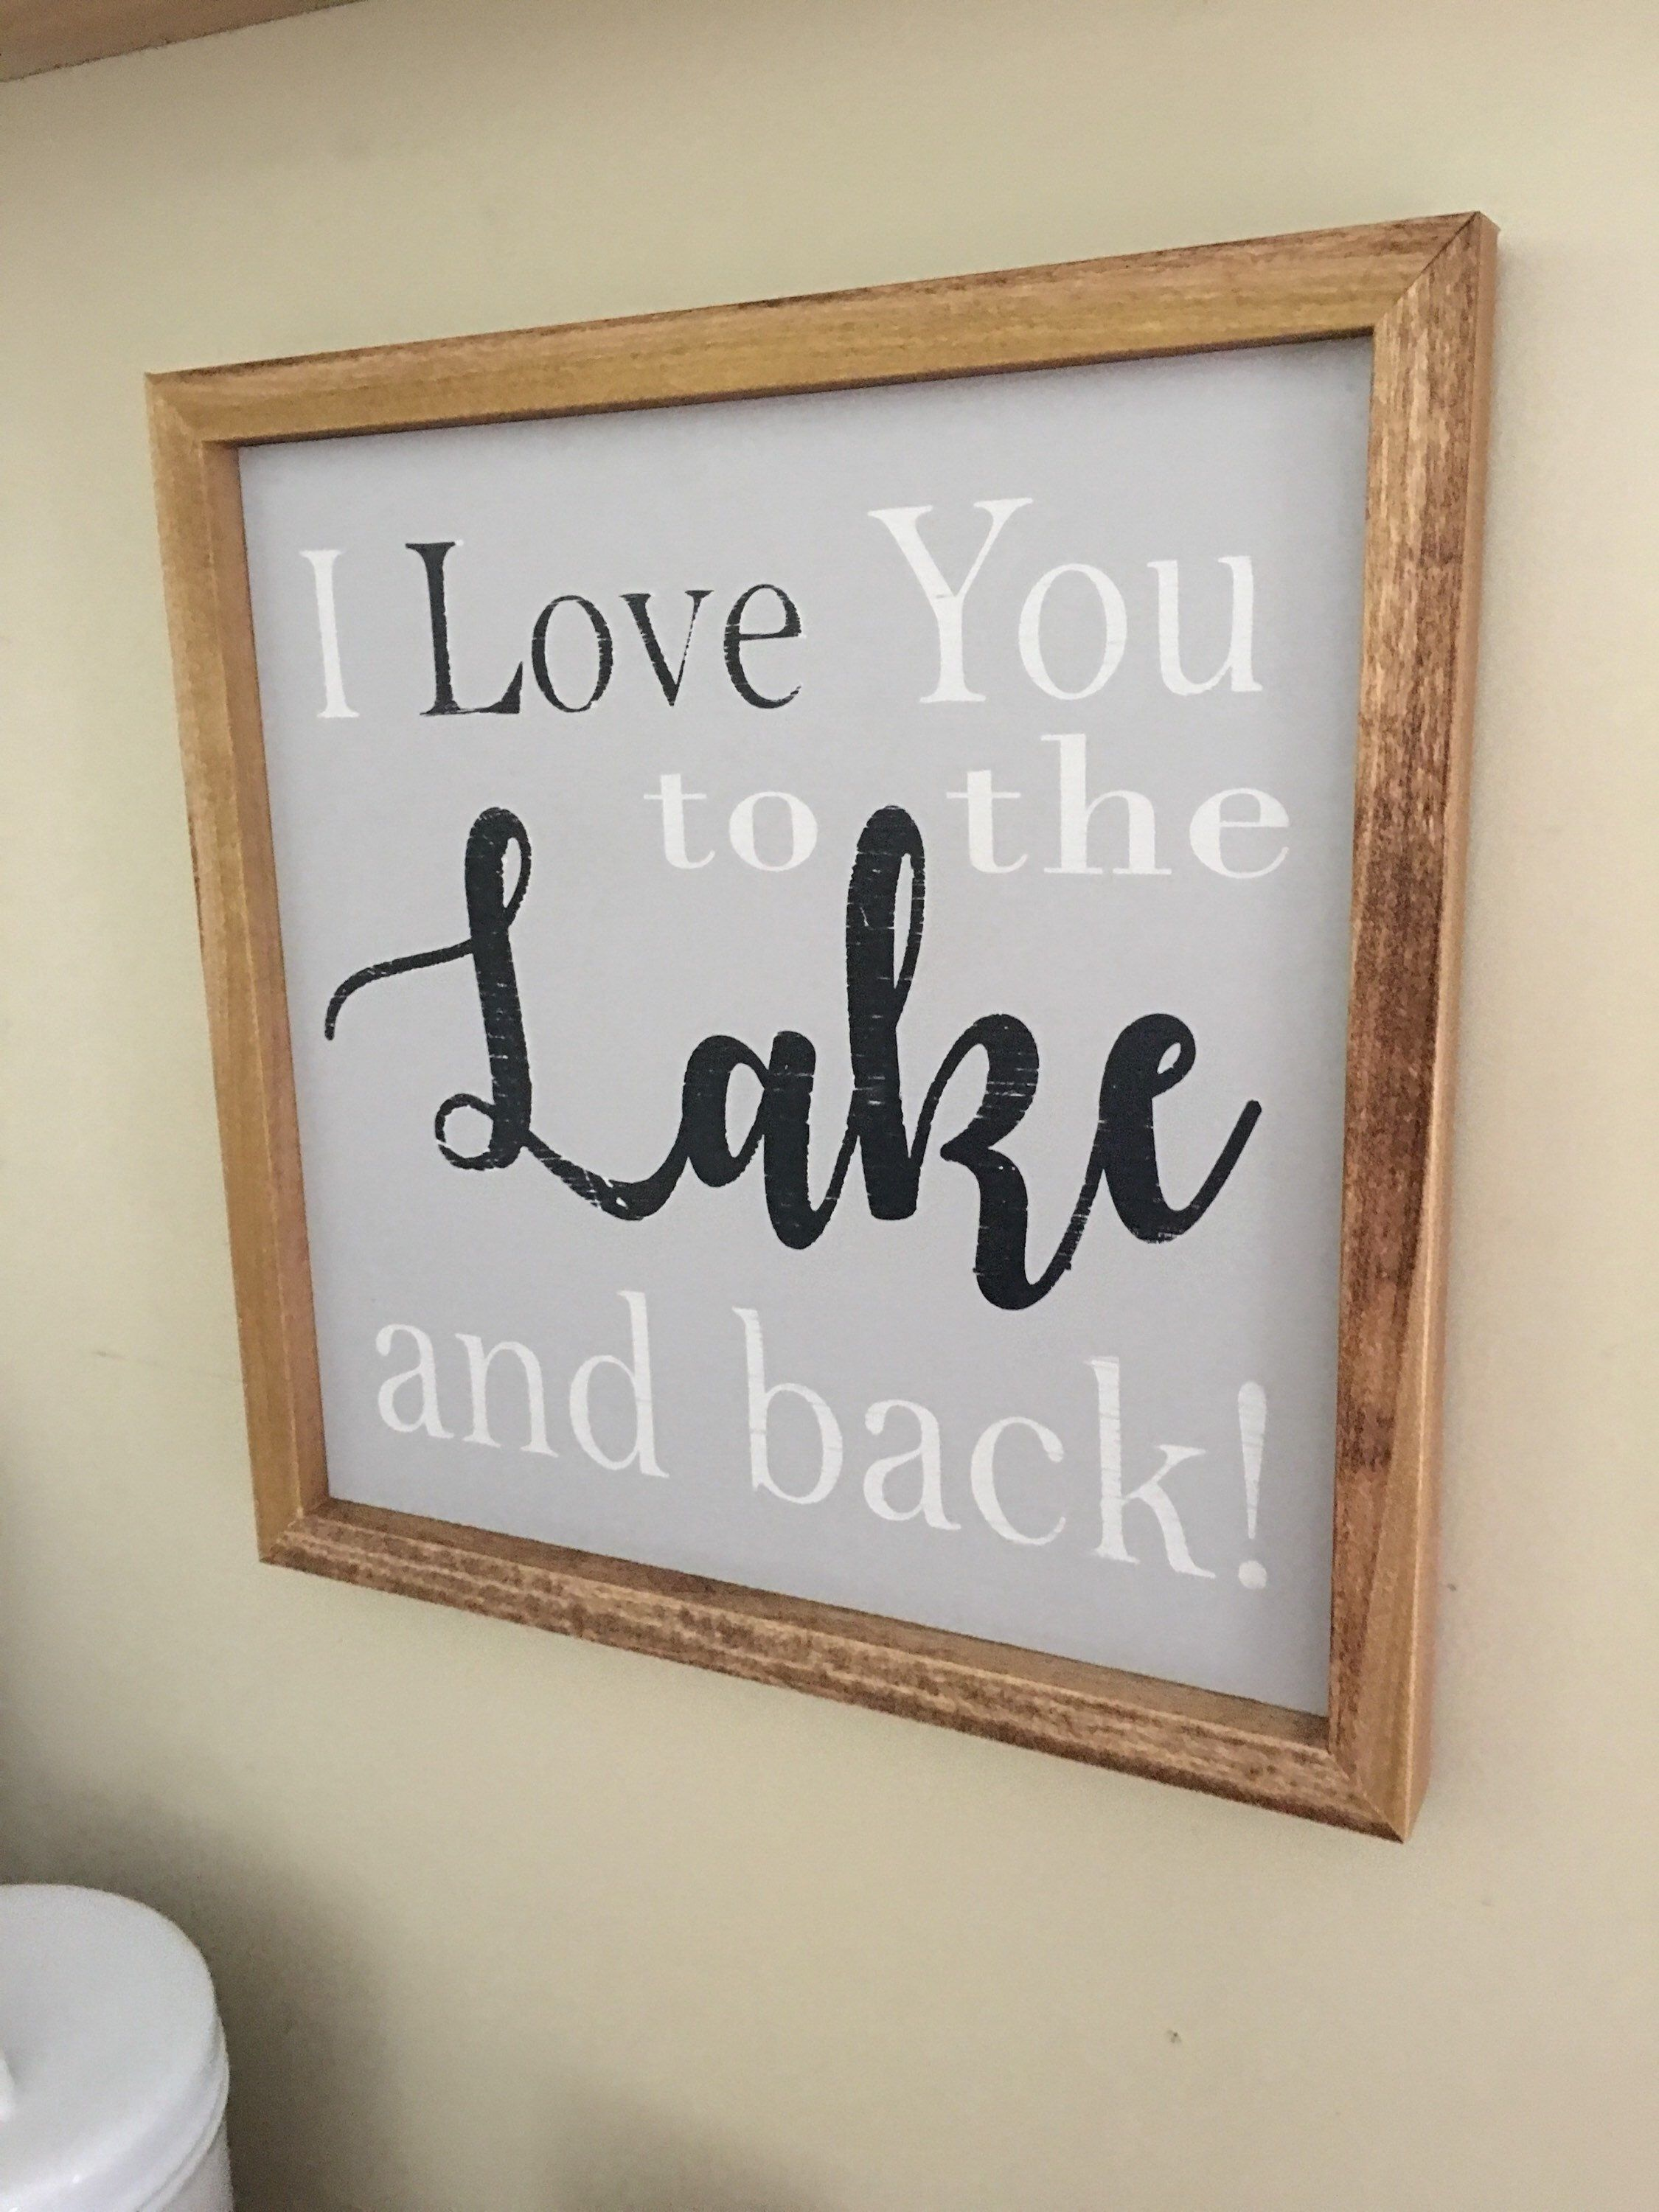 Excited to share this item from my etsy shop lake sign